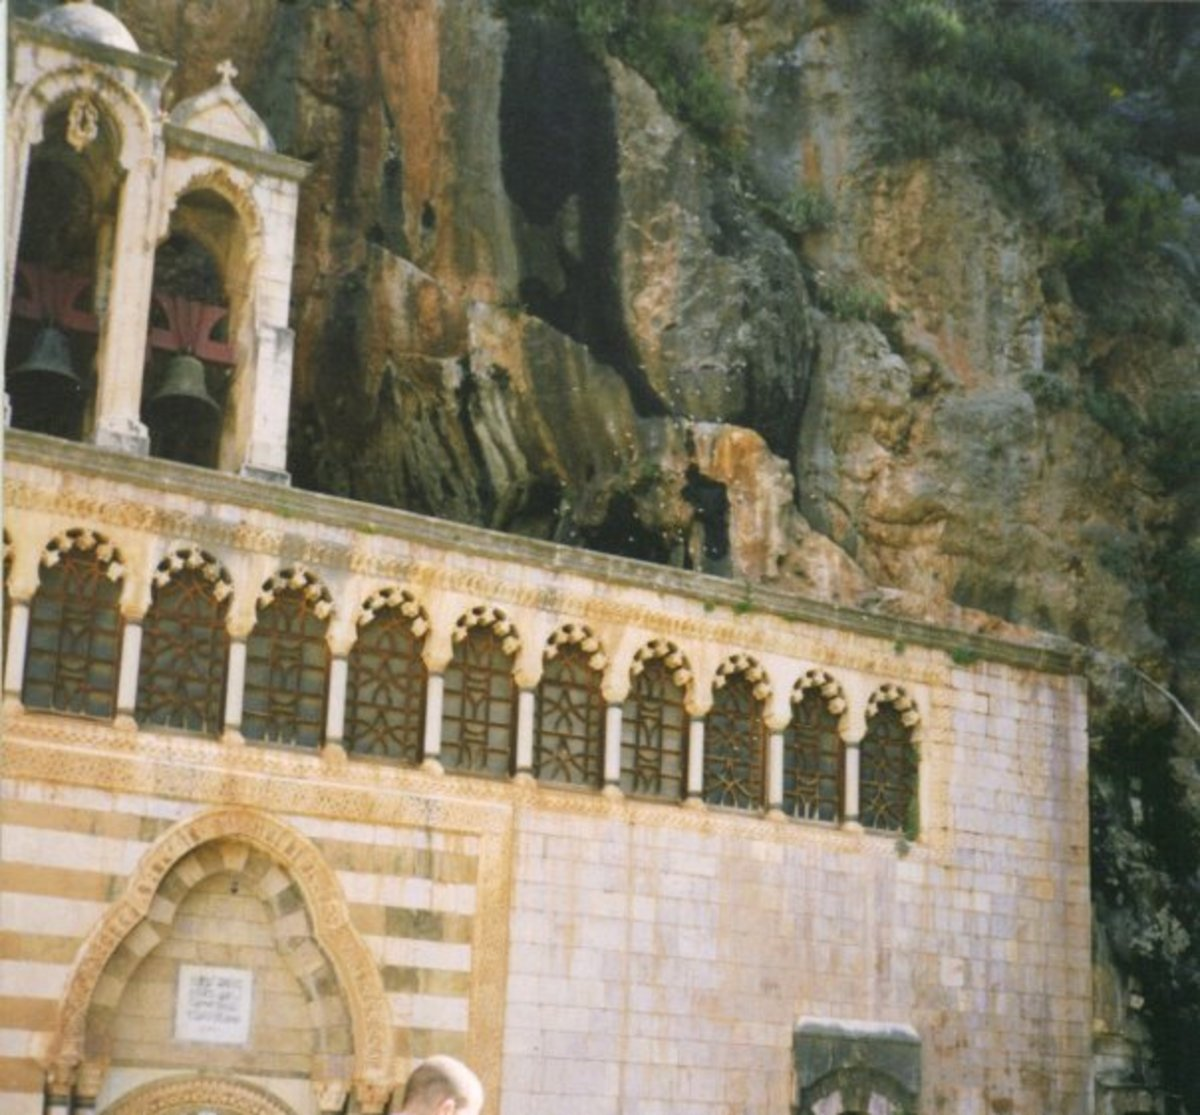 A photo I took of a church built into the rock in the Qadisha Valley in Lebanon.